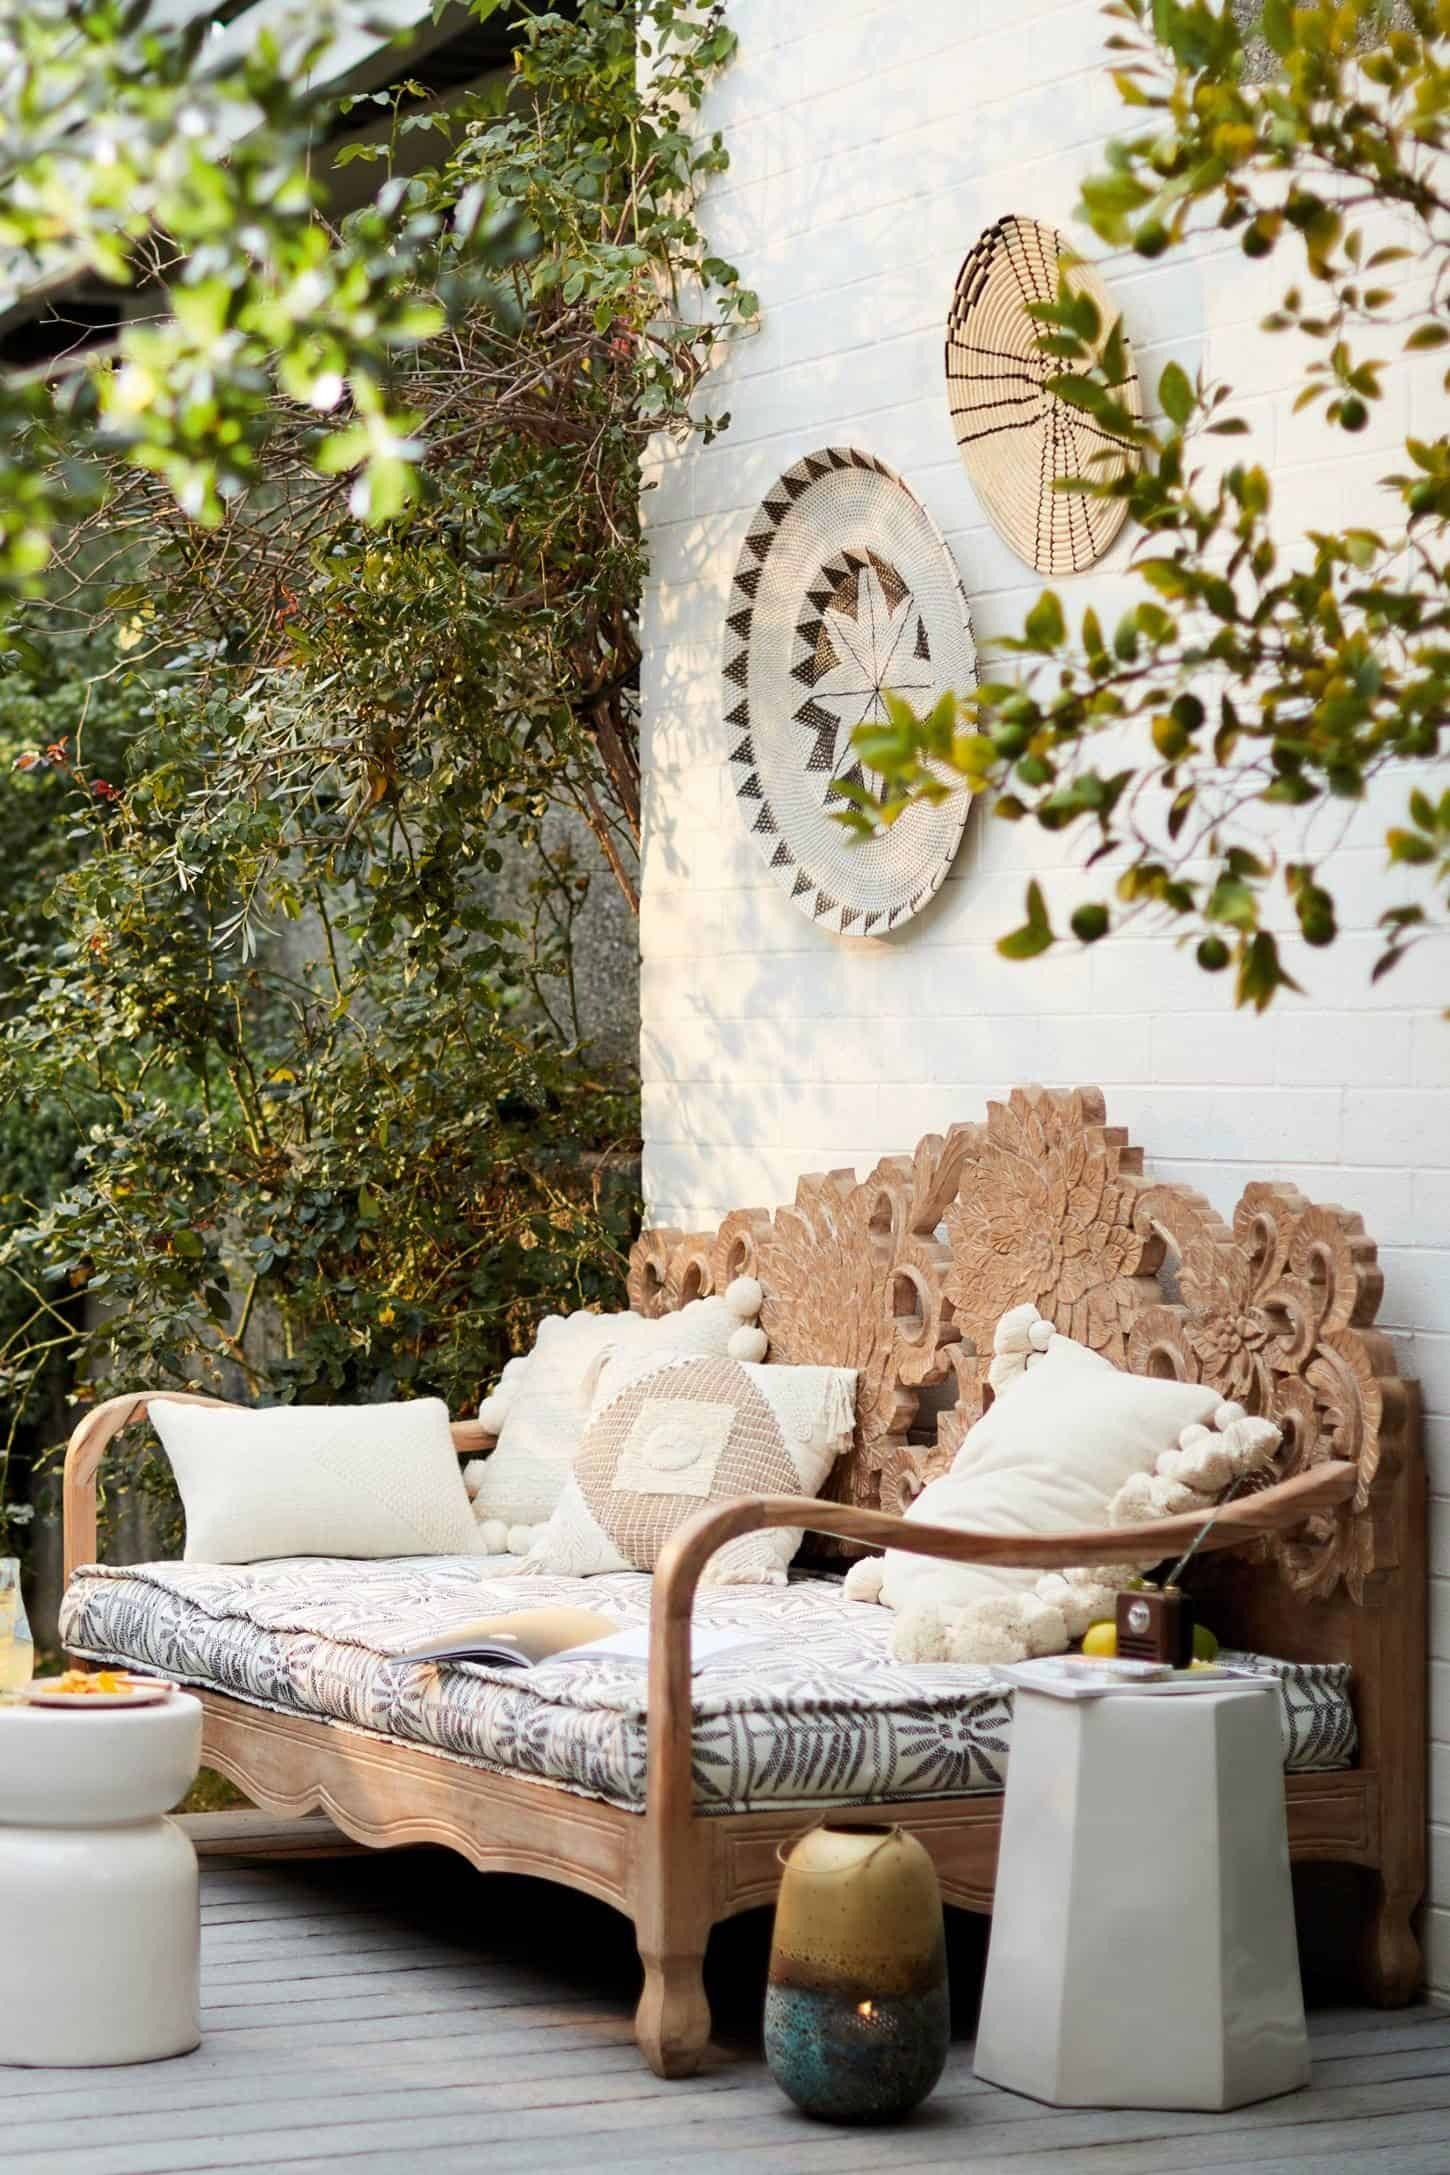 Daybed in a sunny spot loaded with cushions and a few handy side tables for drinks & nibbles.